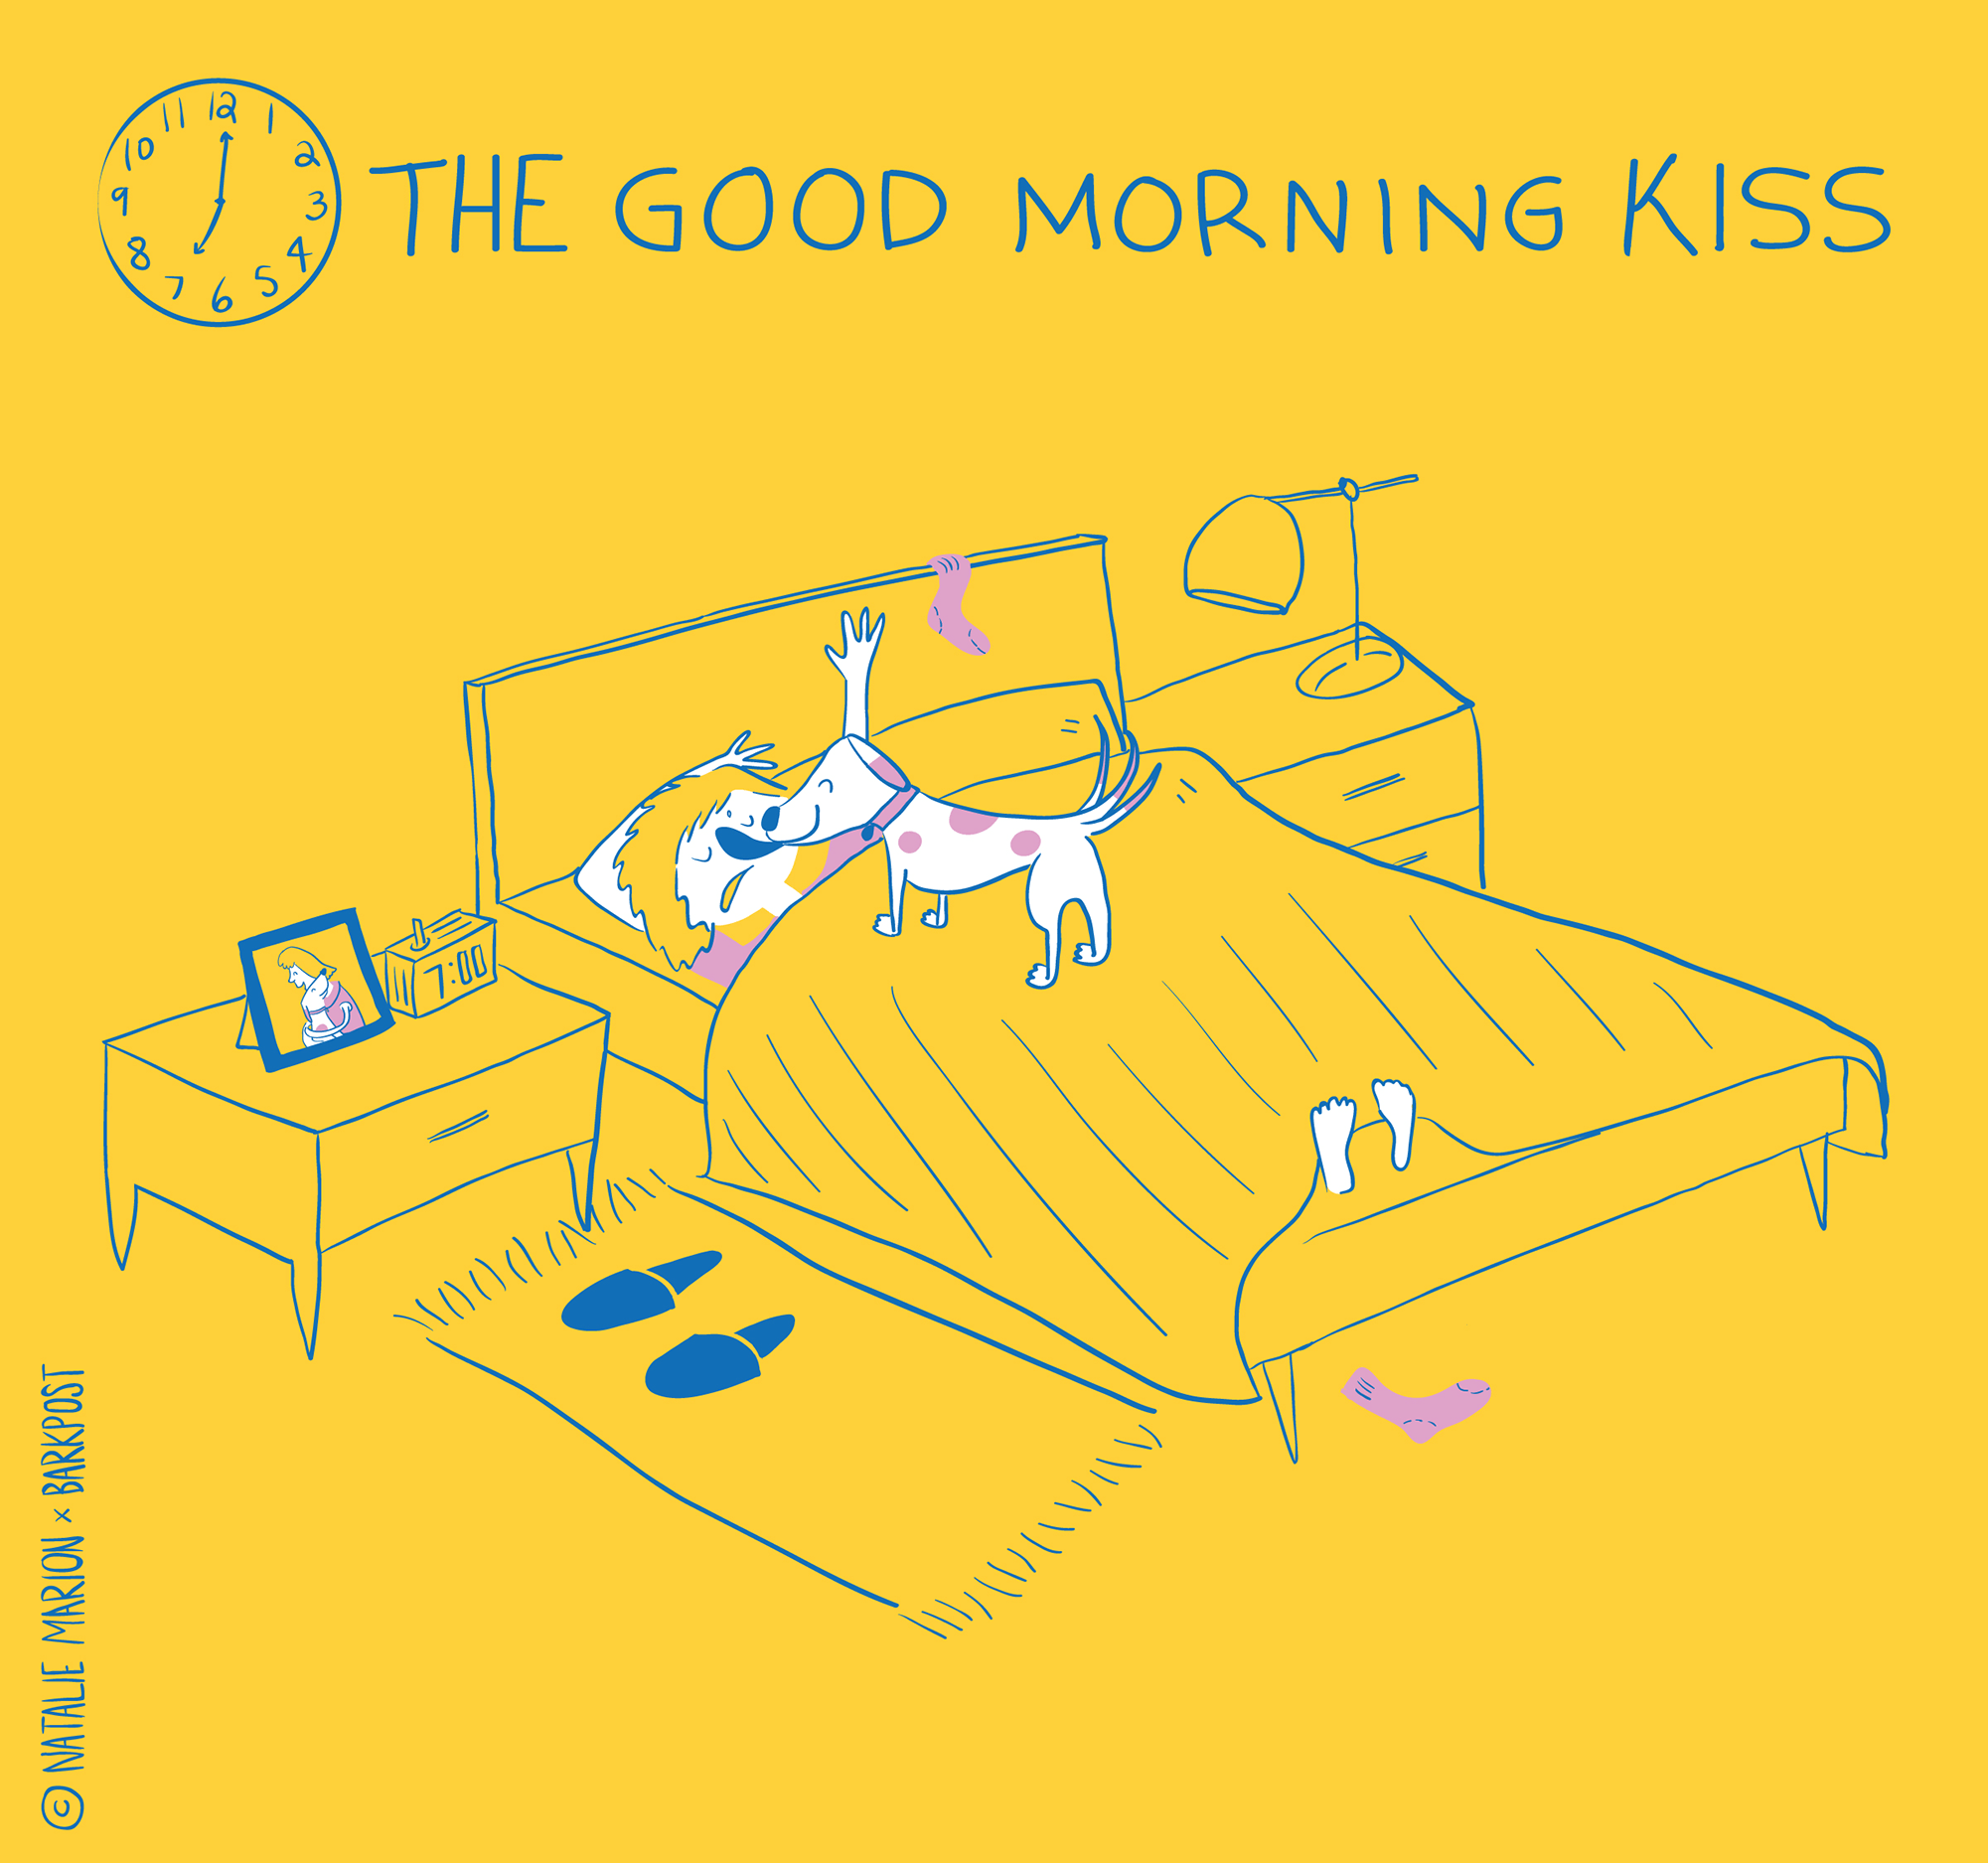 natalie-marion-barkpost-good-morning-kiss-dog-mom.png